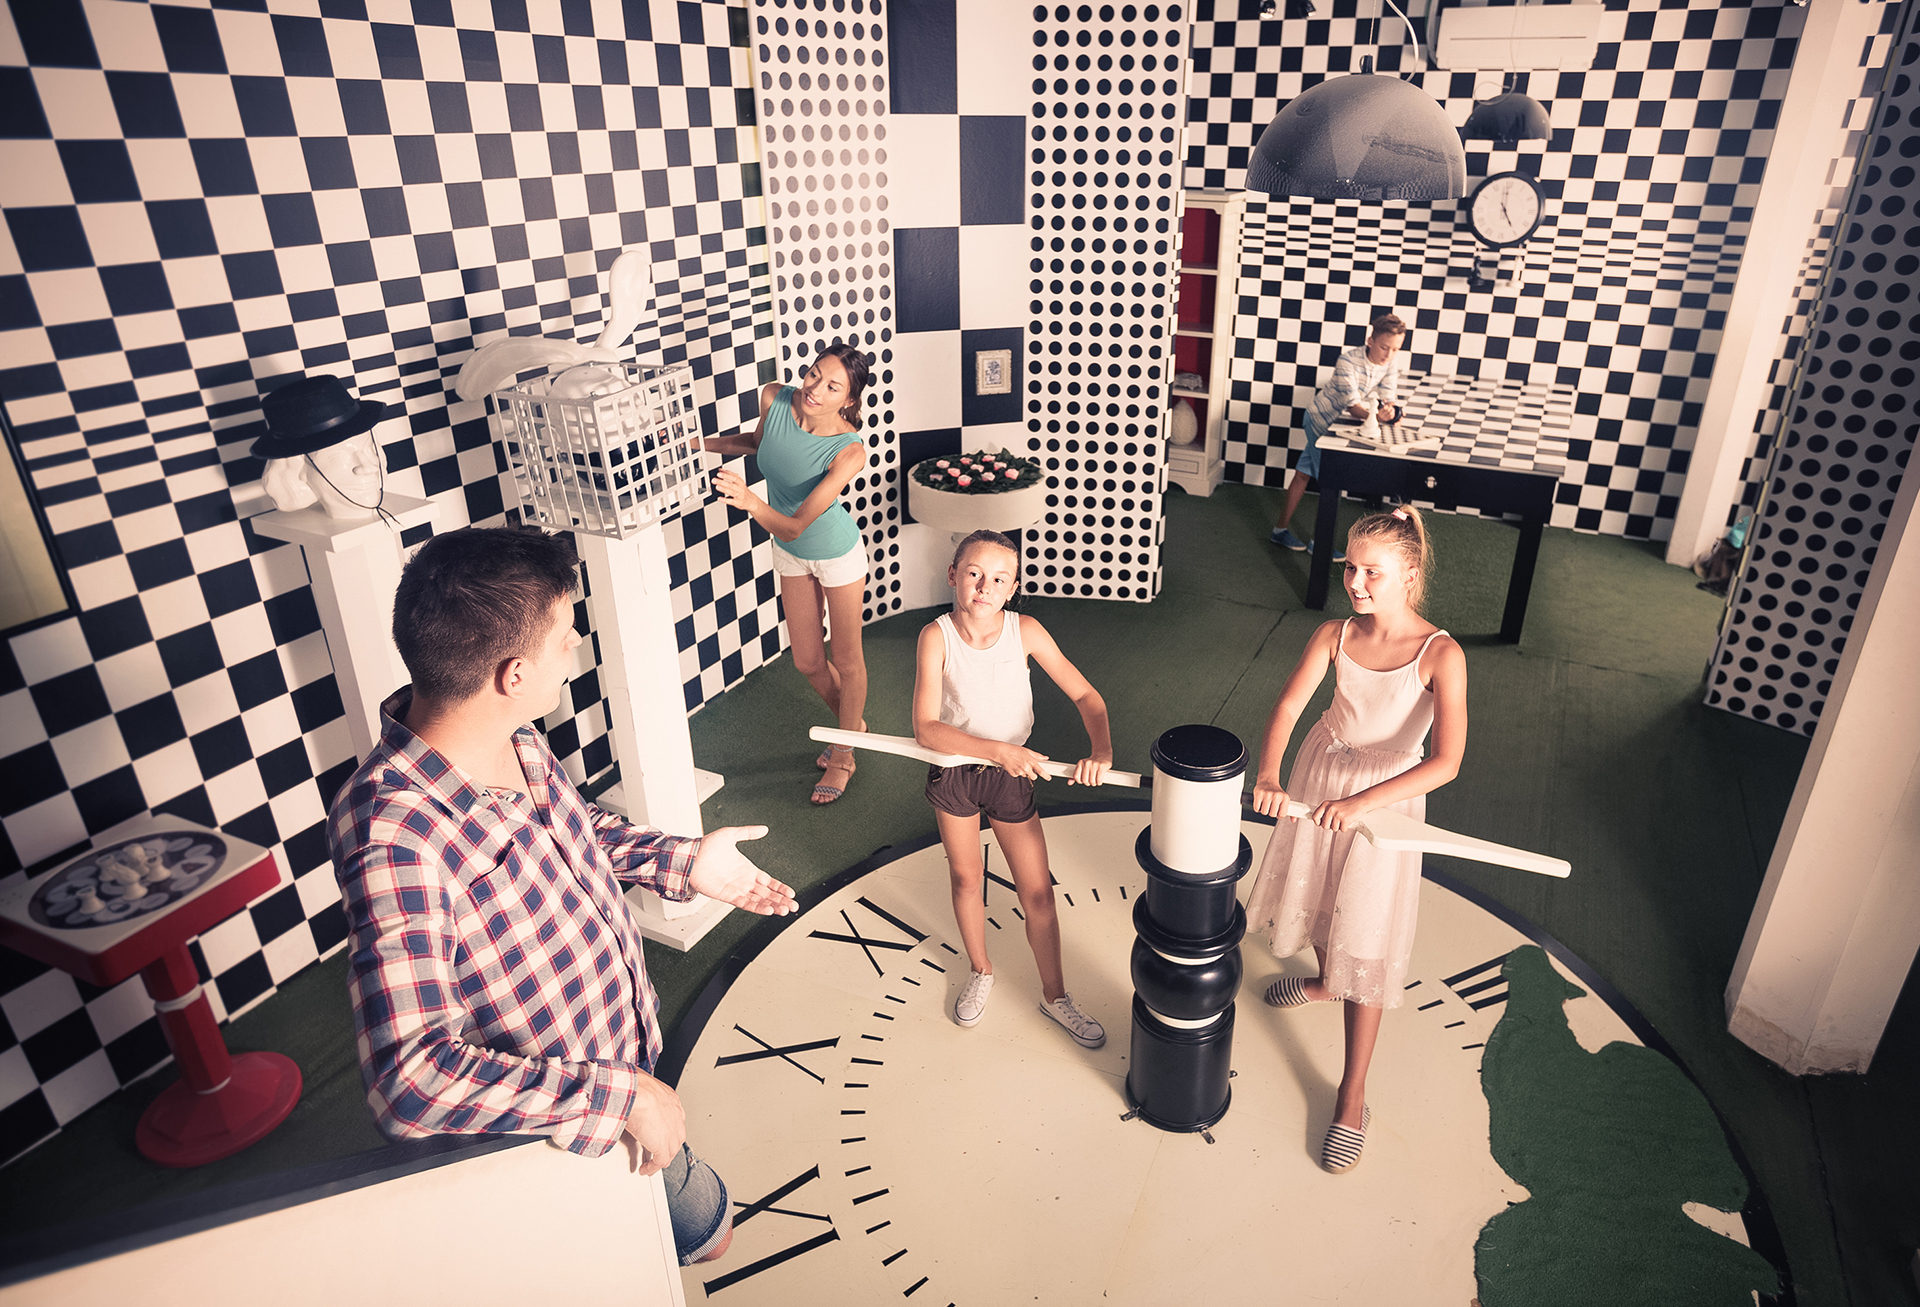 Family of five is having fun together in lost chessroom.